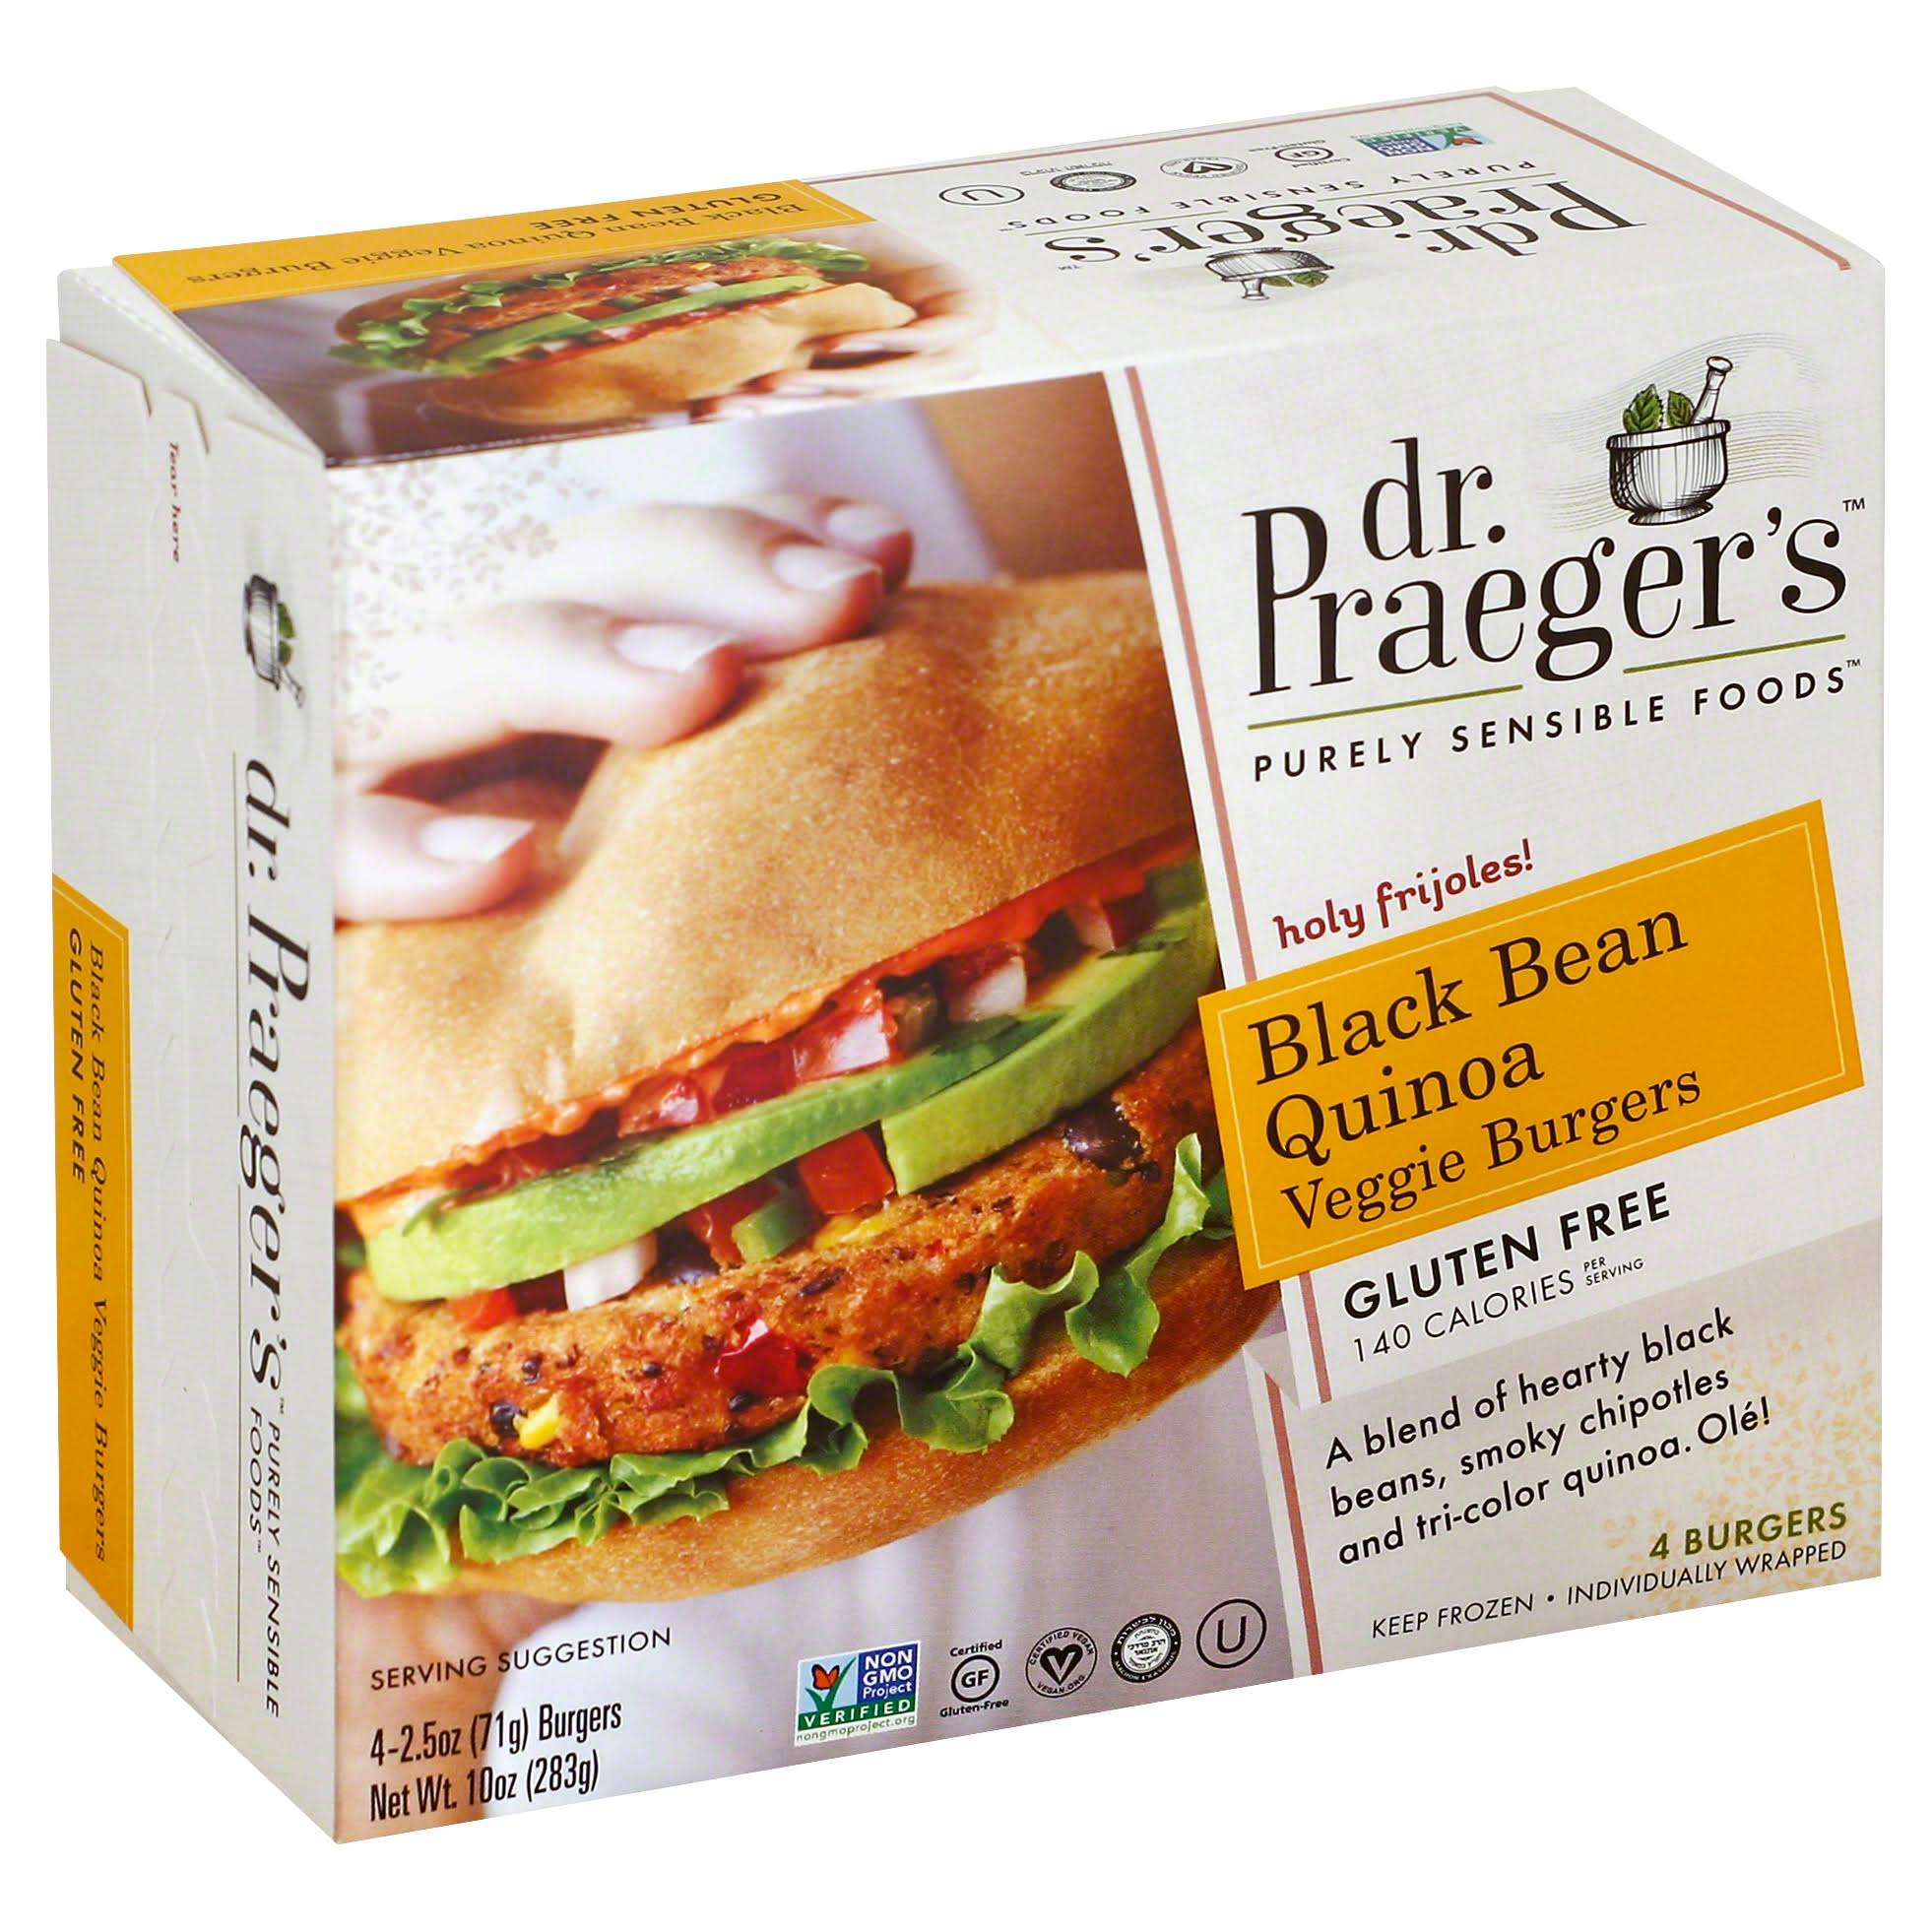 Dr. Praeger's Black Bean Burgers - 4 count, 10 oz box